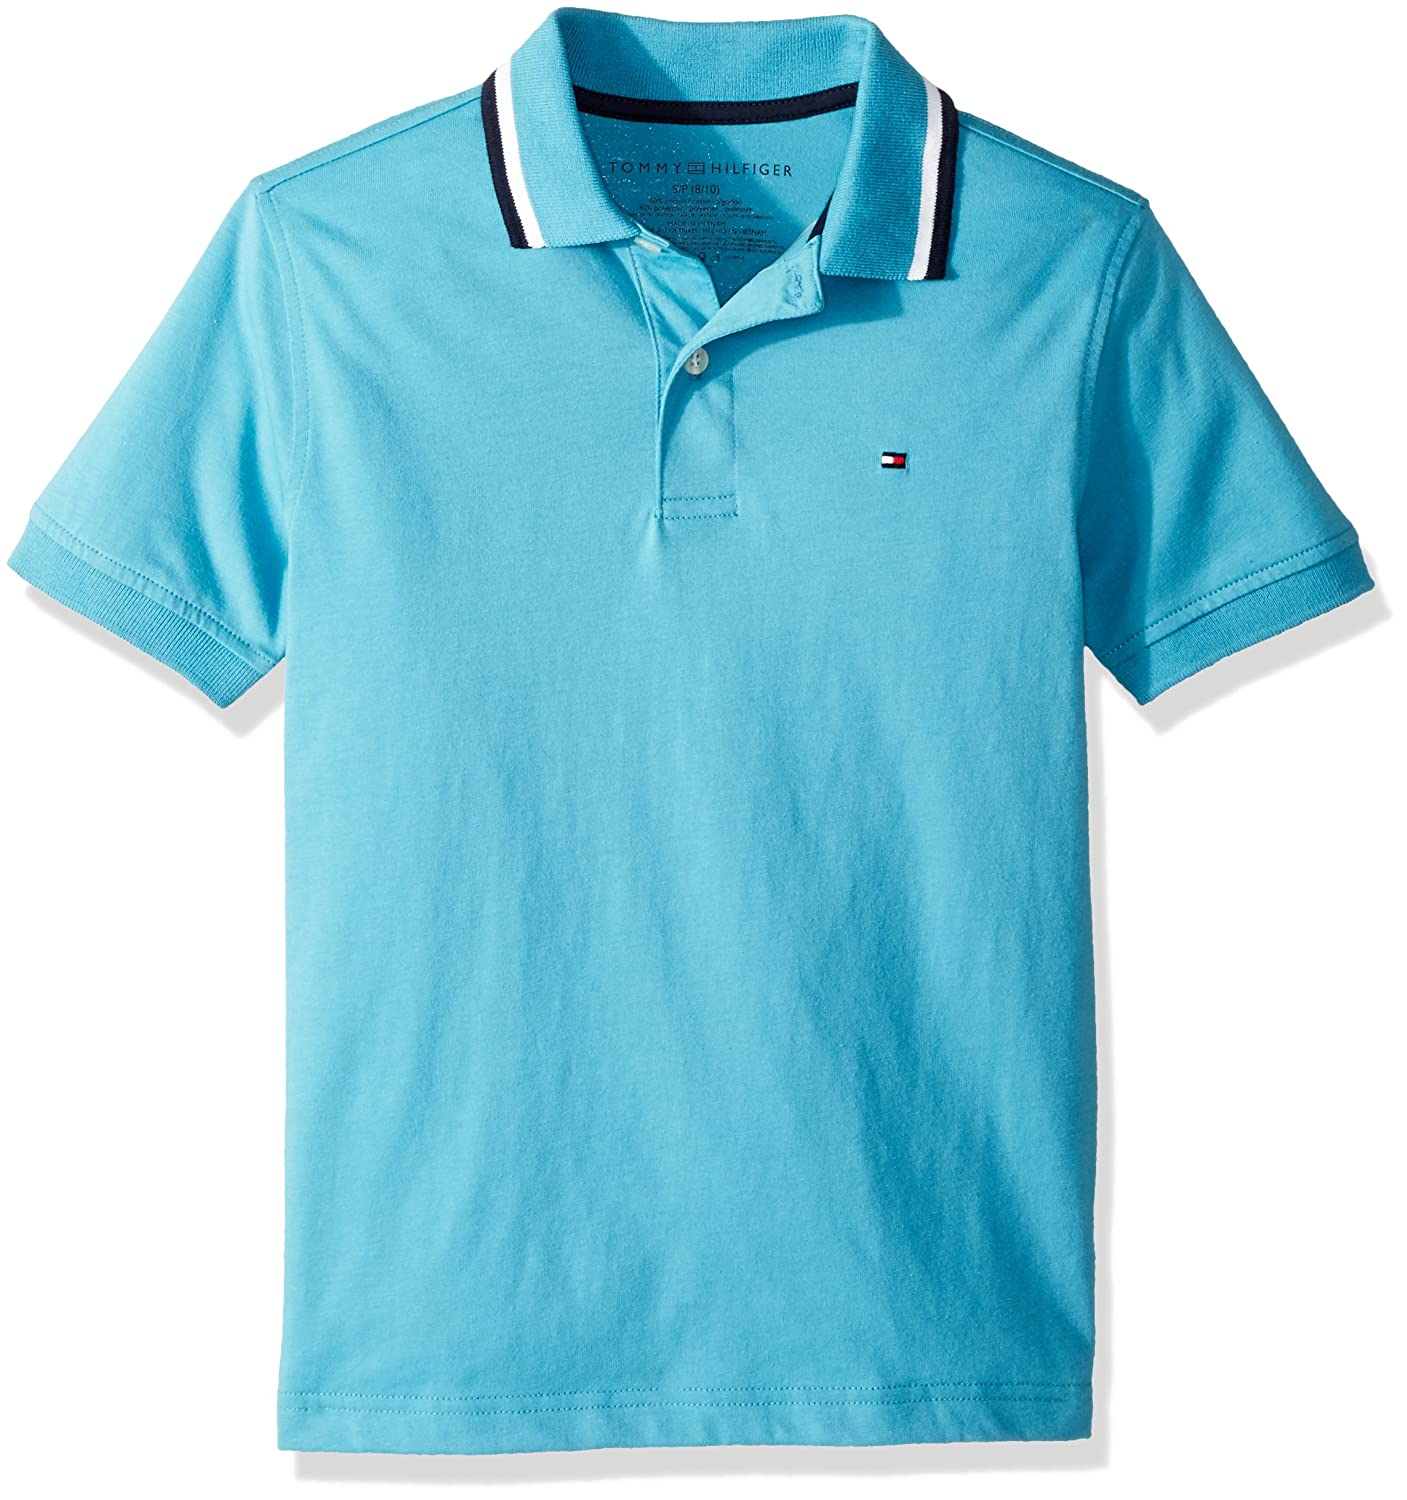 Tommy+Hilfiger Tommy Hilfiger Boys Short Sleeve Performance Polo with Tipped Collar